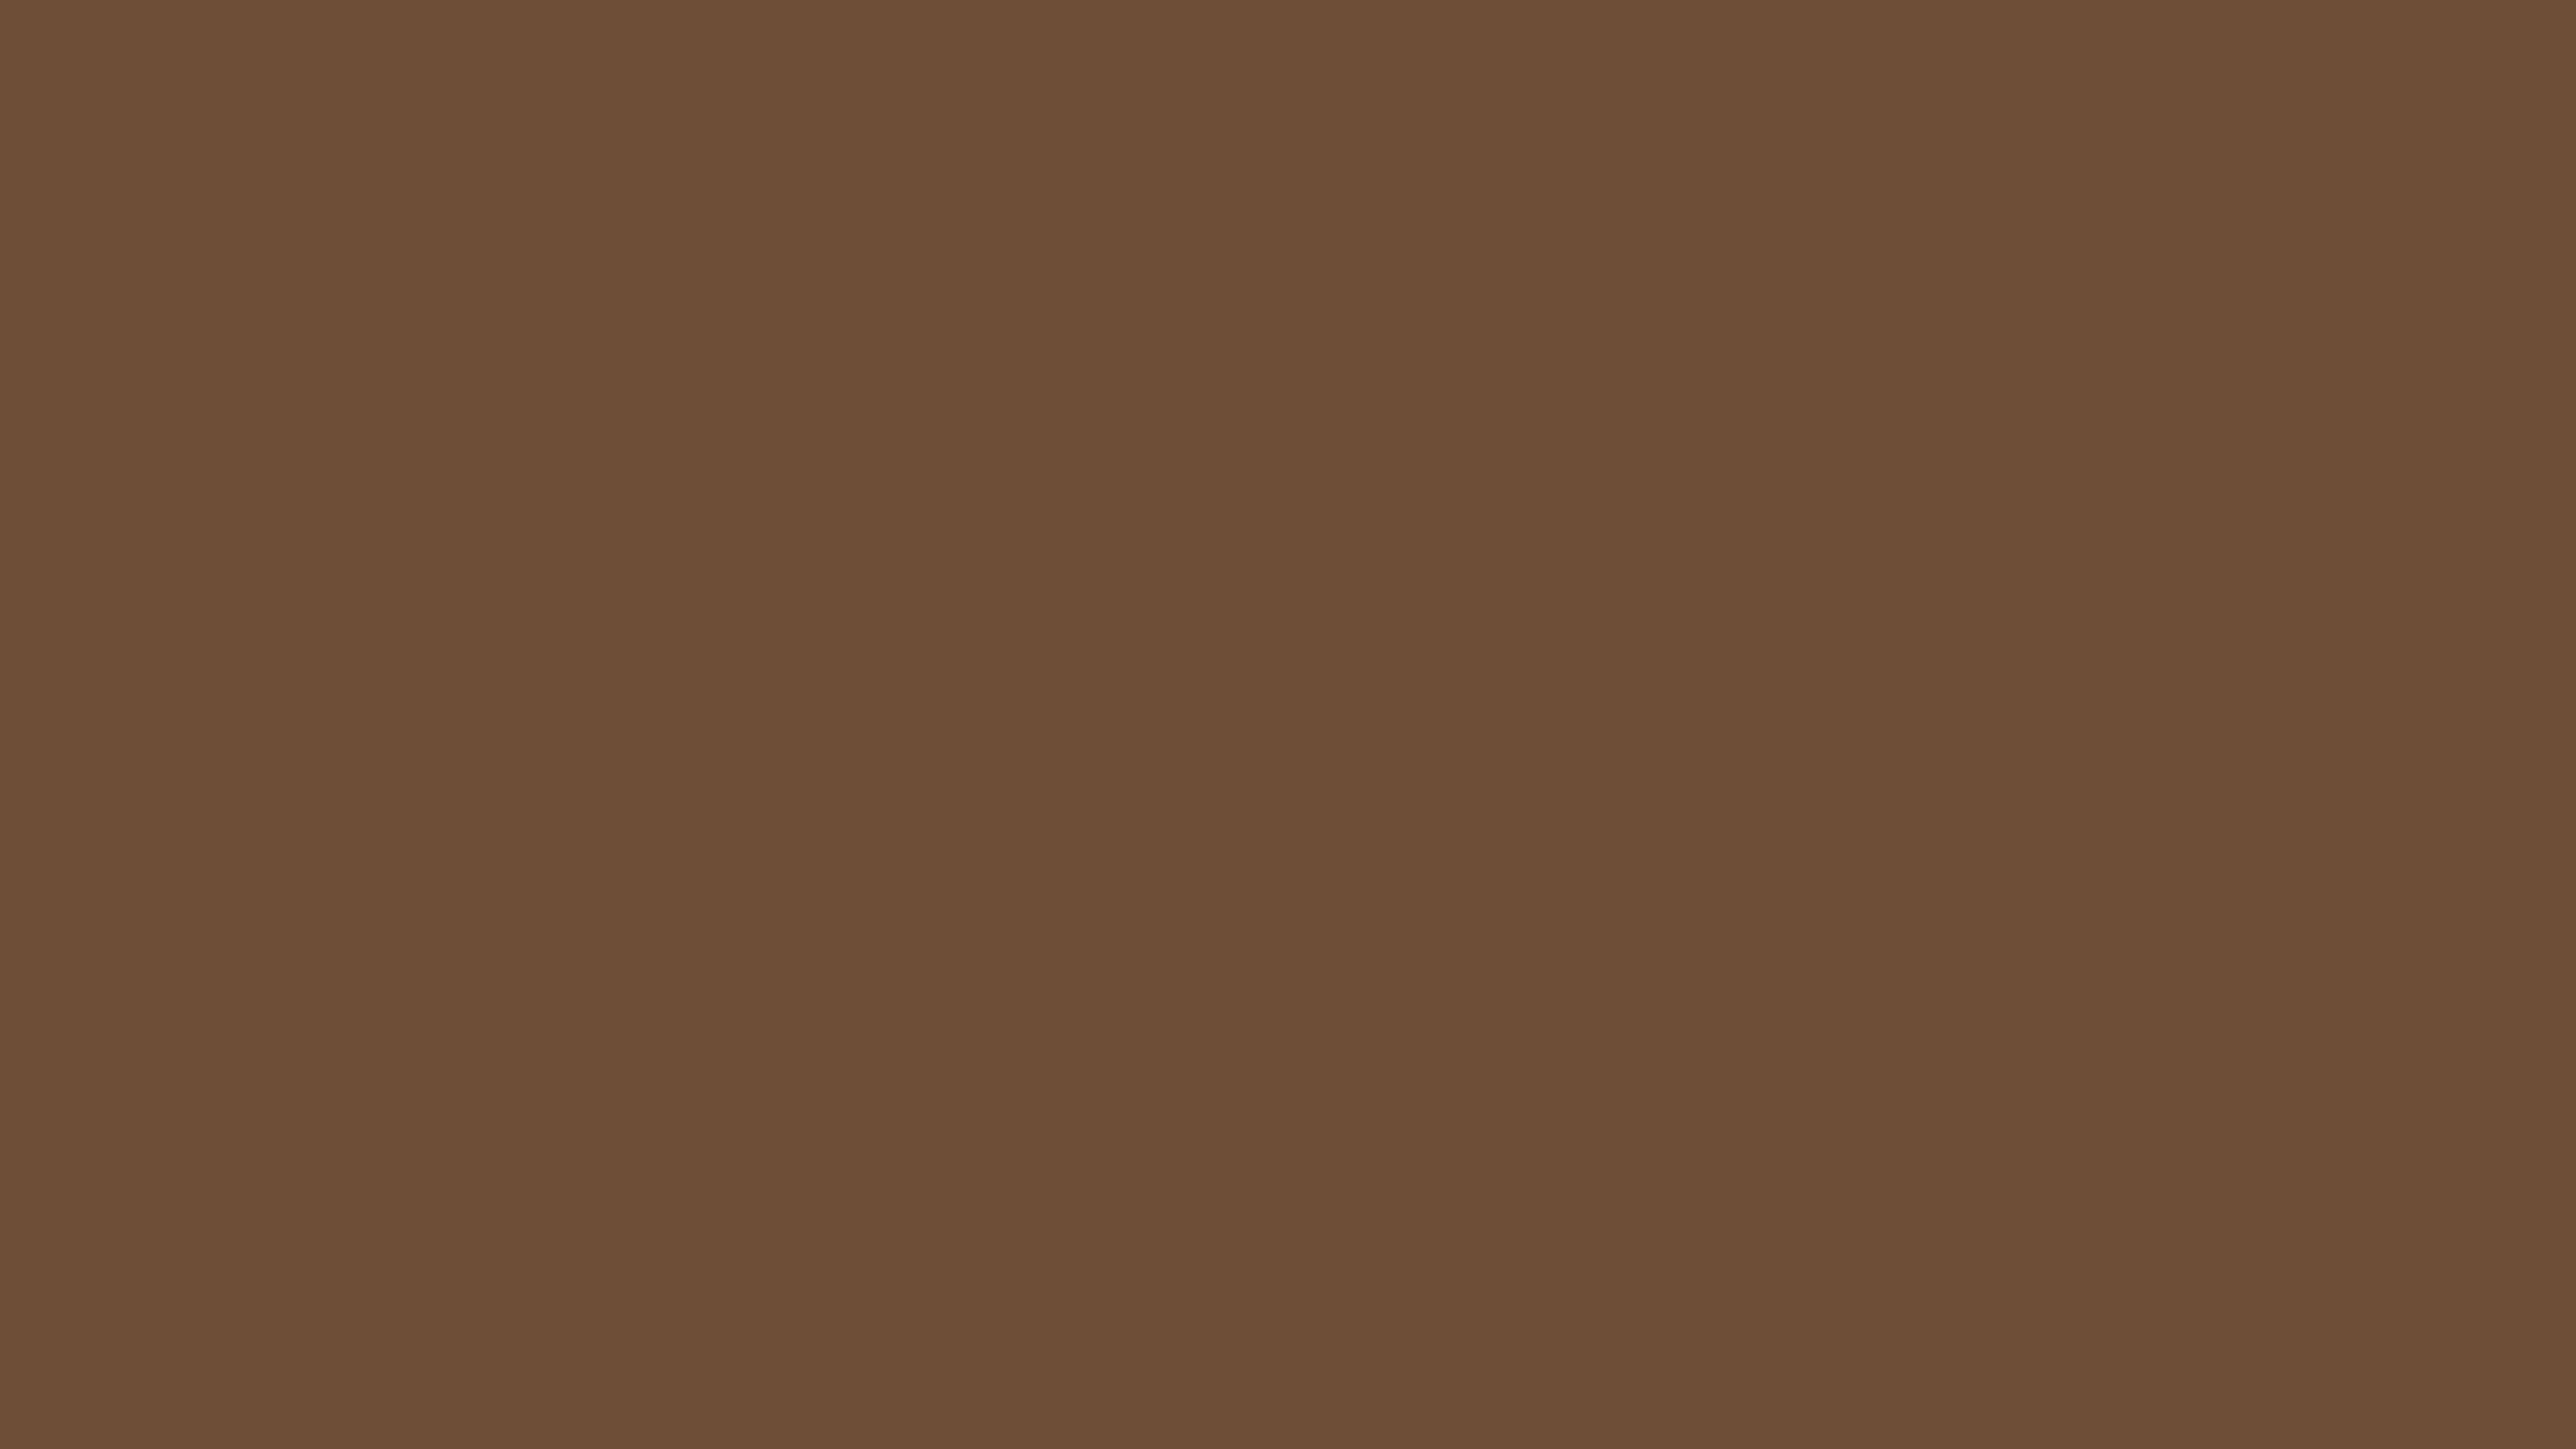 7680x4320 Tuscan Brown Solid Color Background